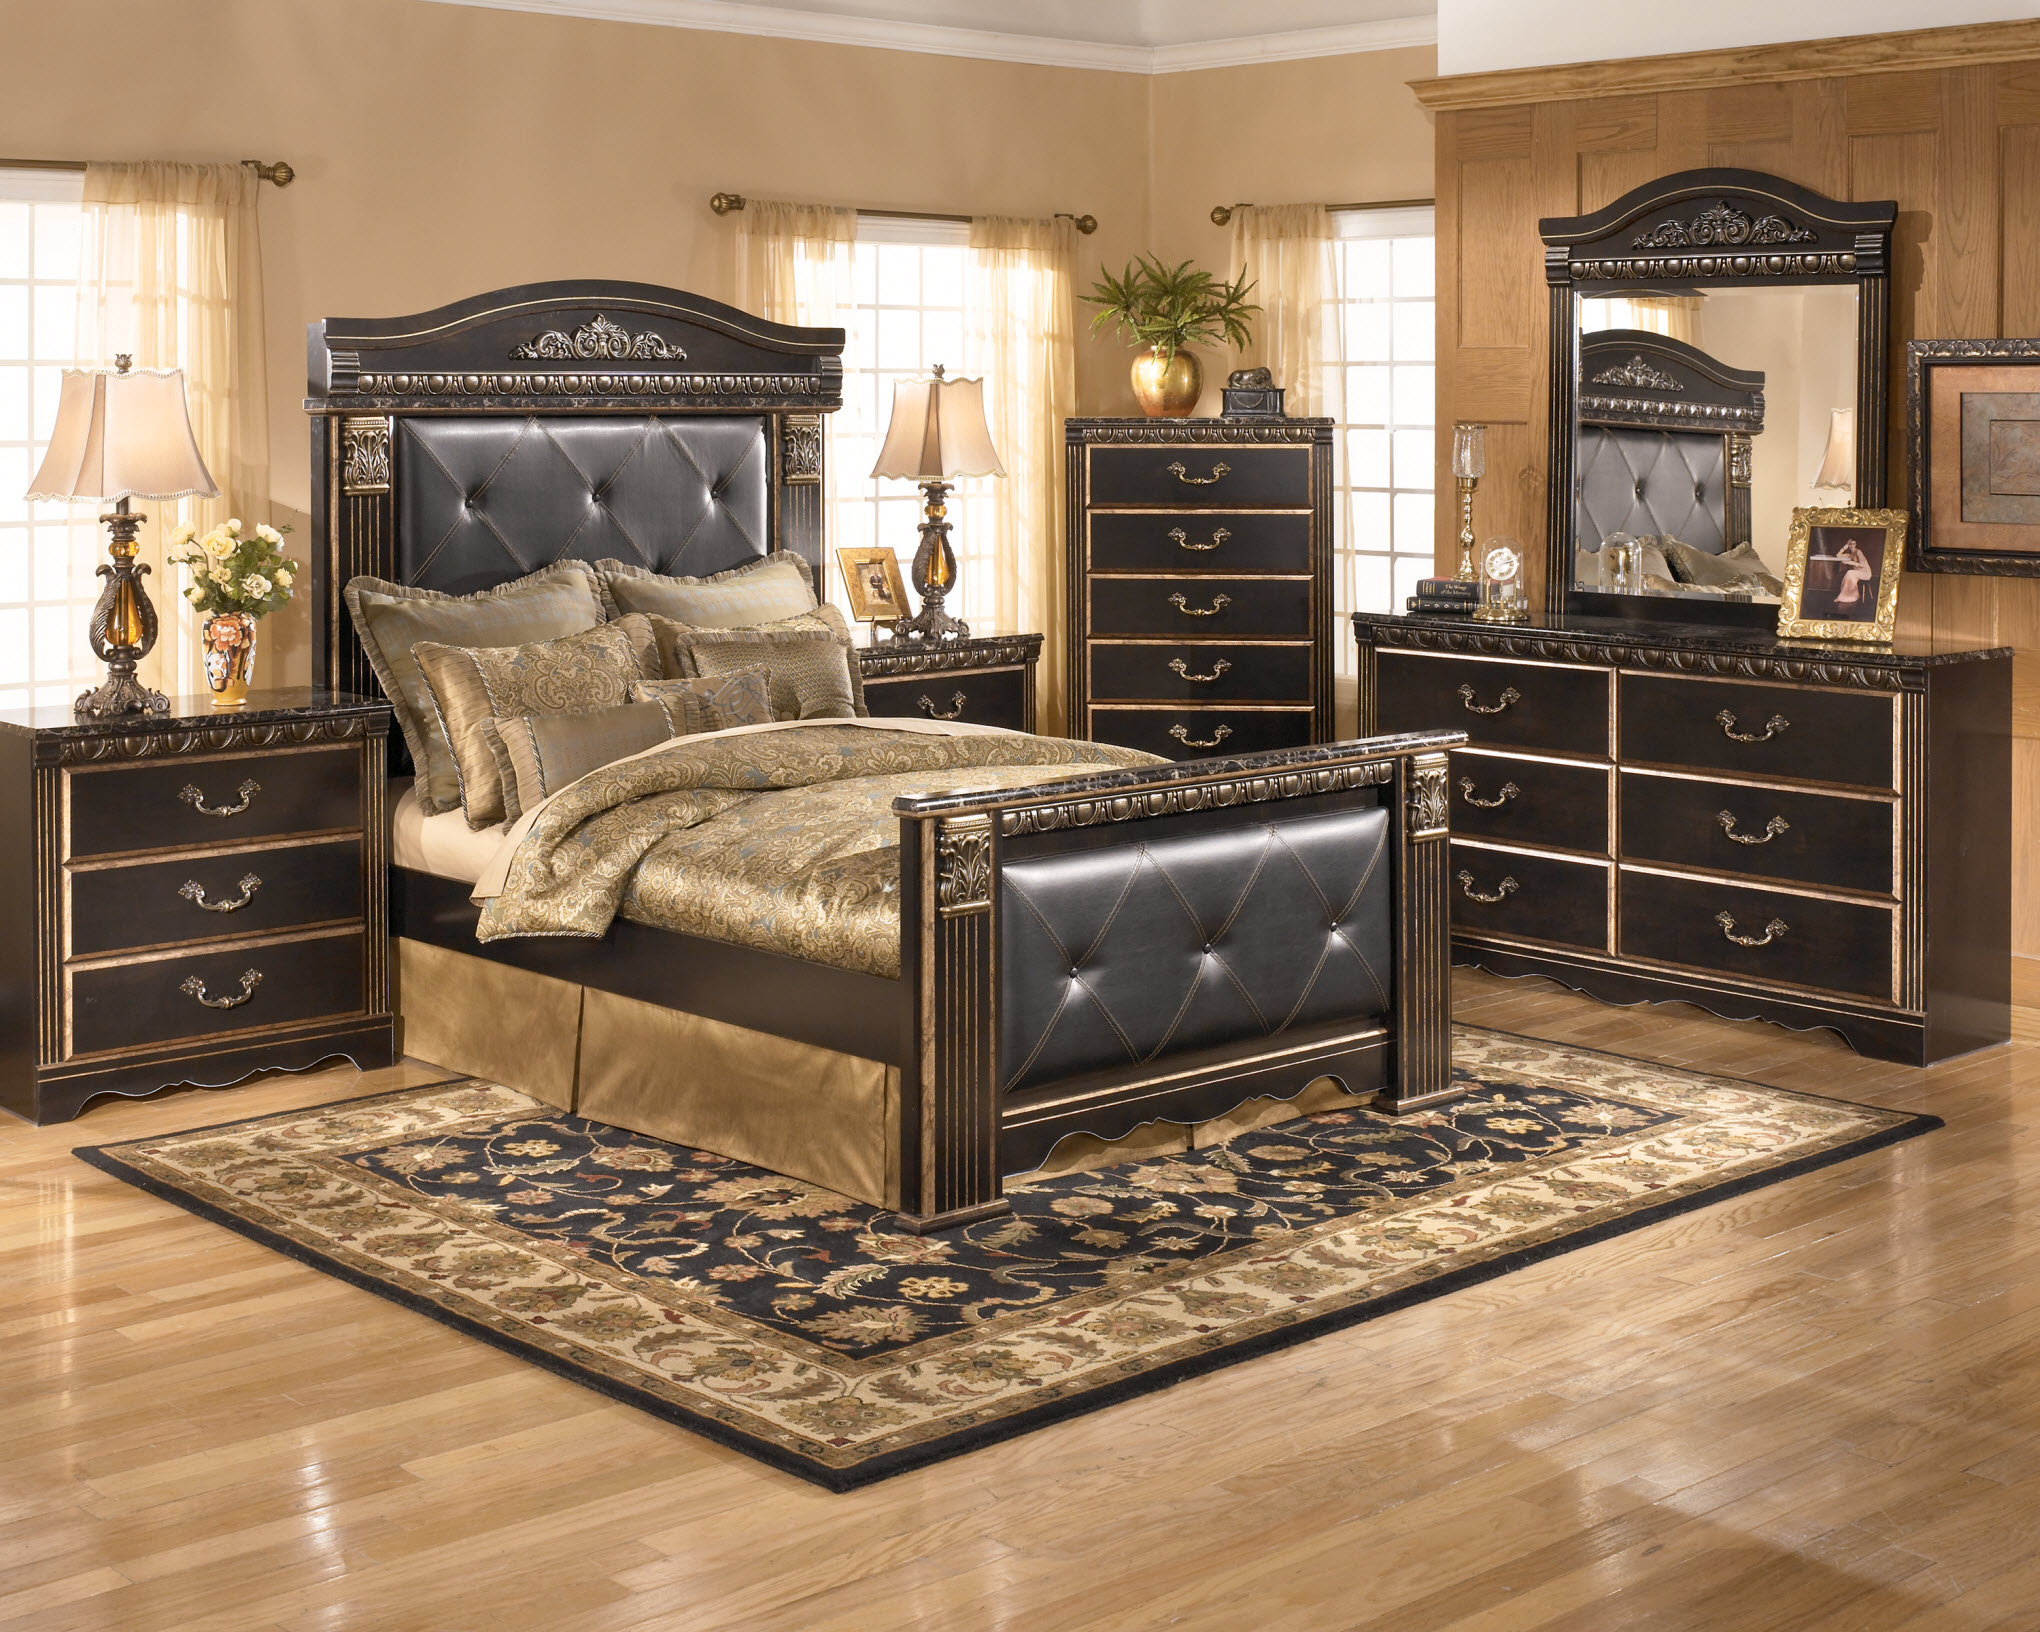 Ashley Furniture Dollhouse Bedroom Set Reviews Bedroom Style Ideas